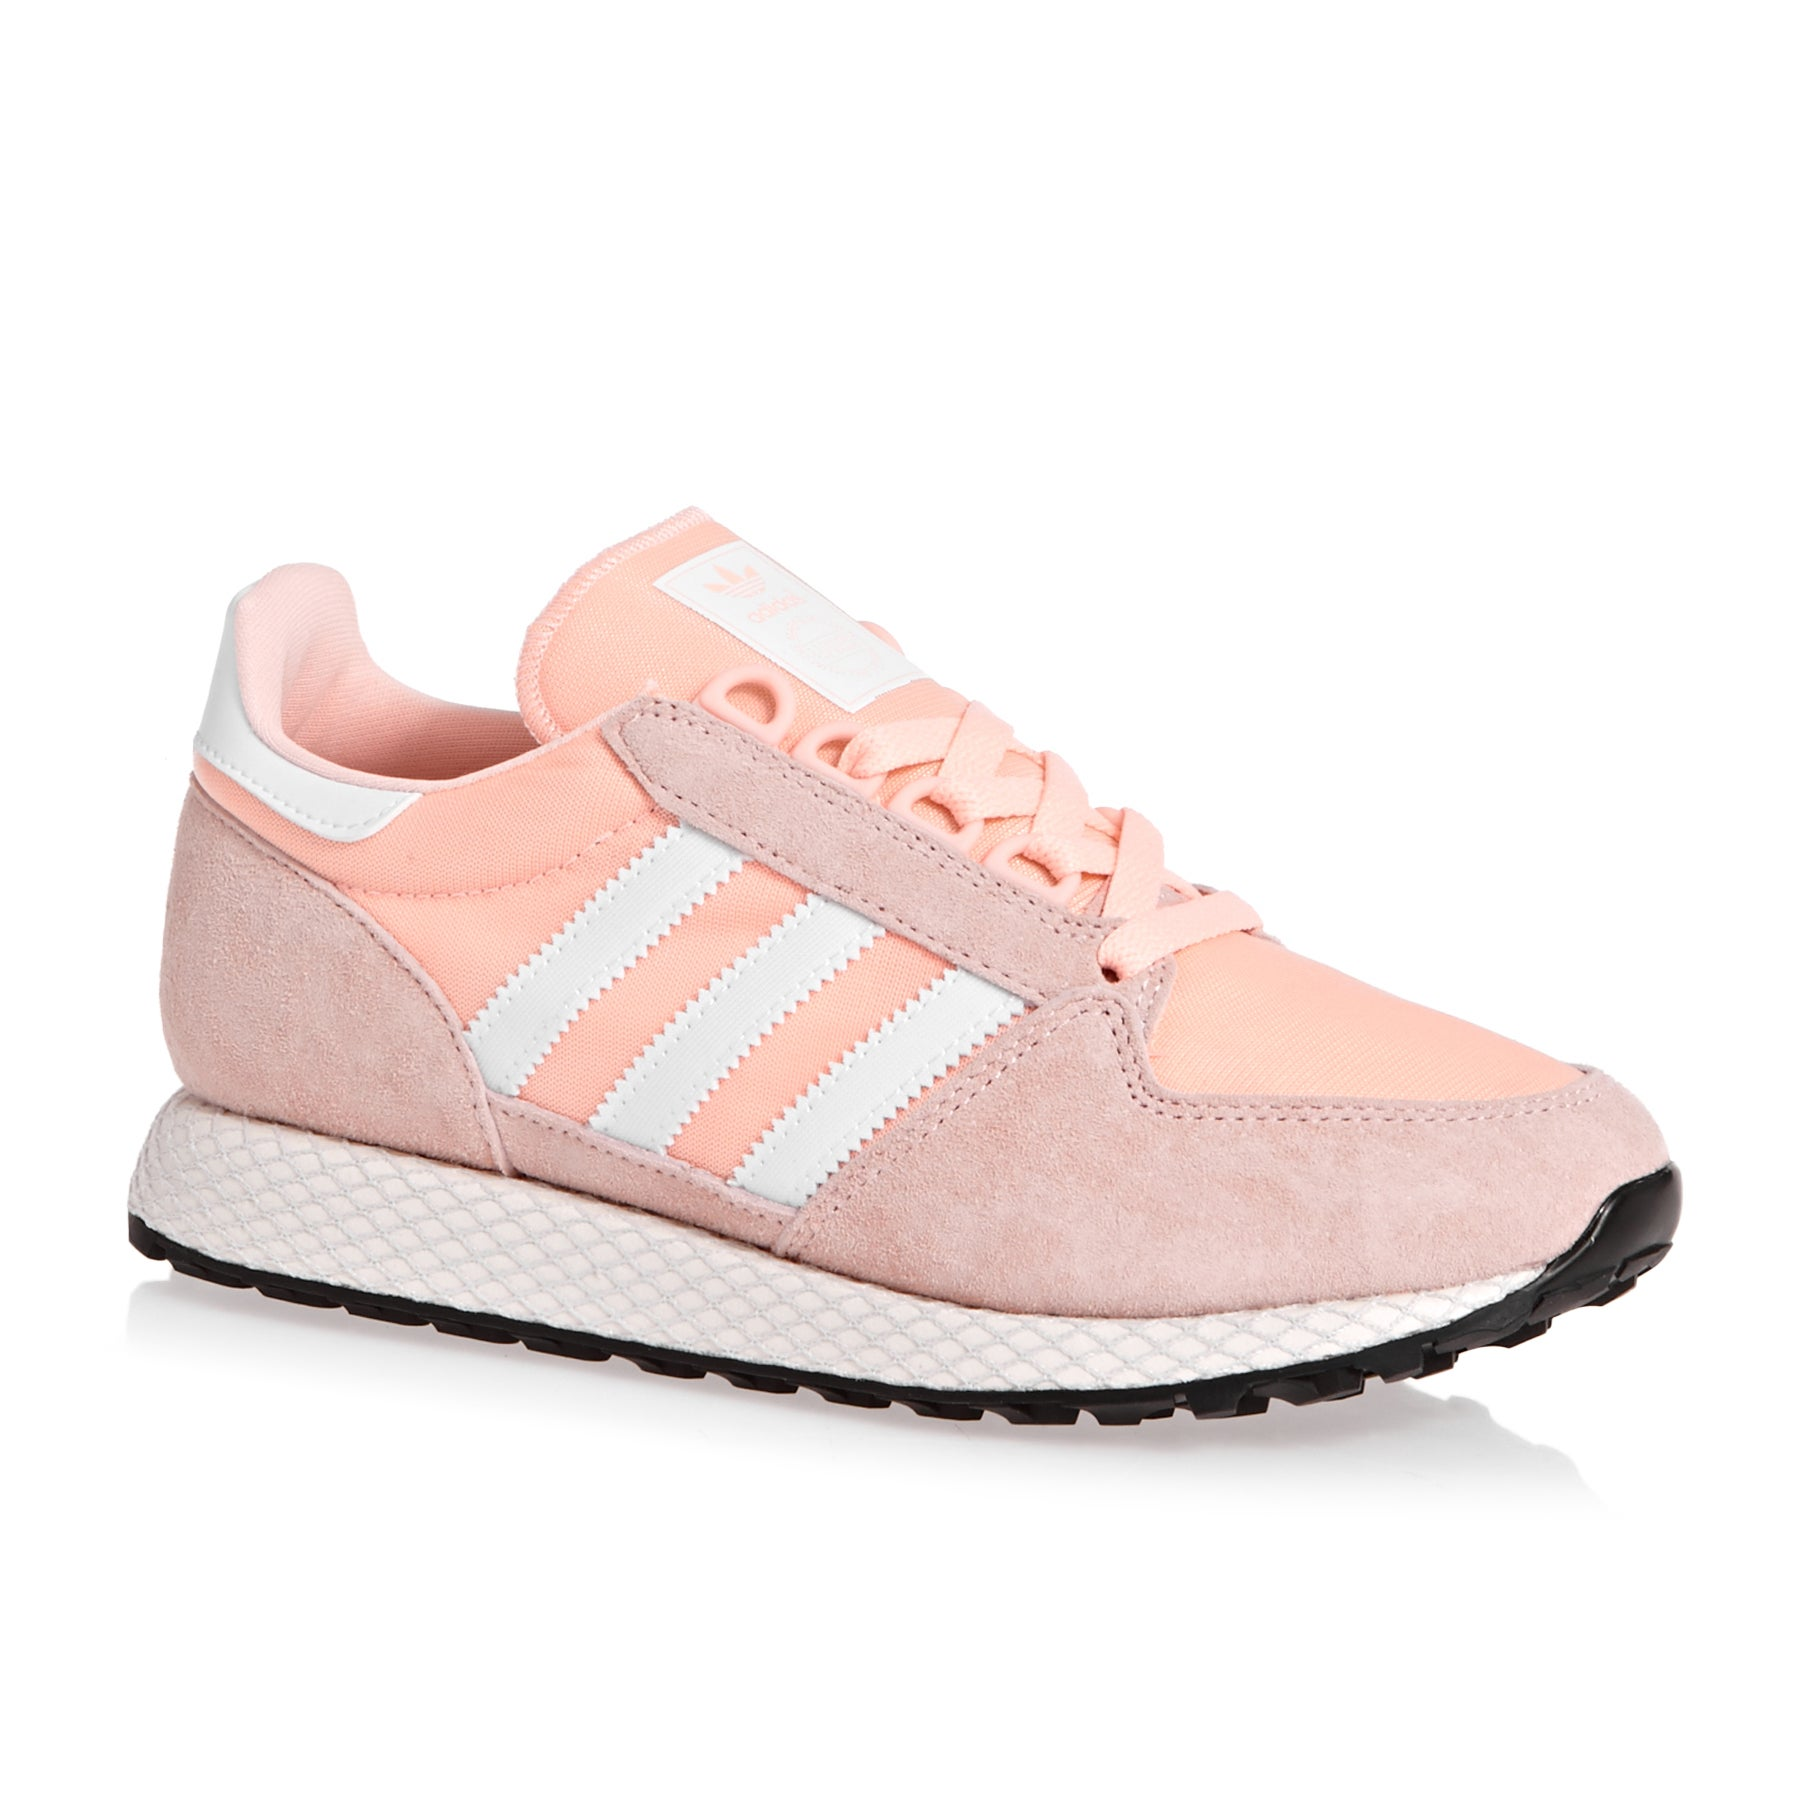 Adidas Originals Forest Grove Womens Shoes - Pink White Black